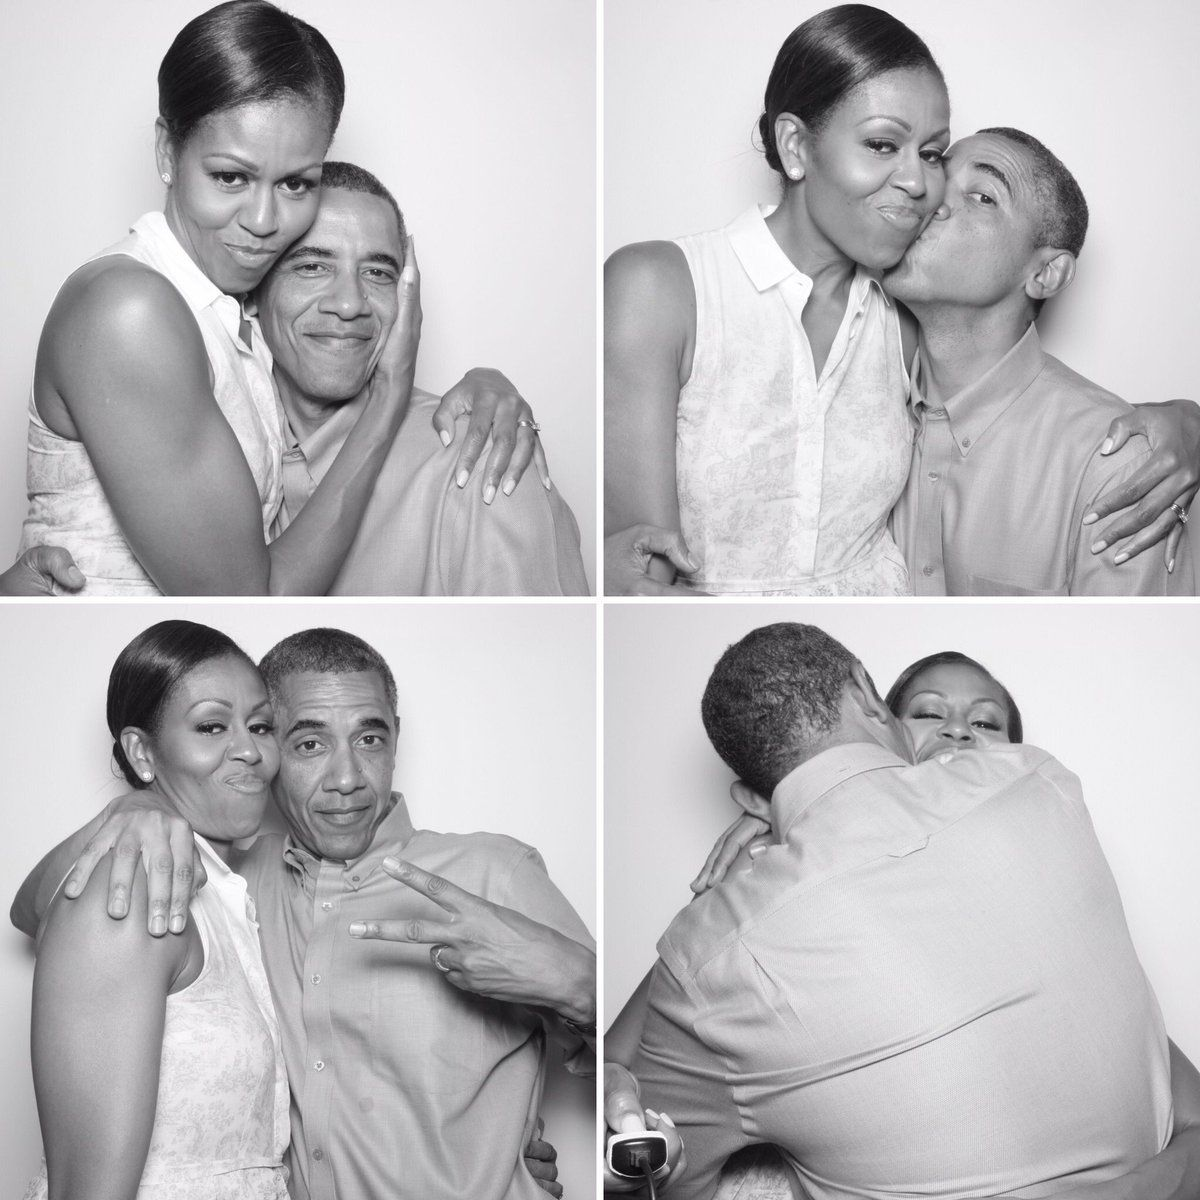 Tag Yourself in These Ridiculously Adorable Barack and Michelle Obama Photo Booth Pictures